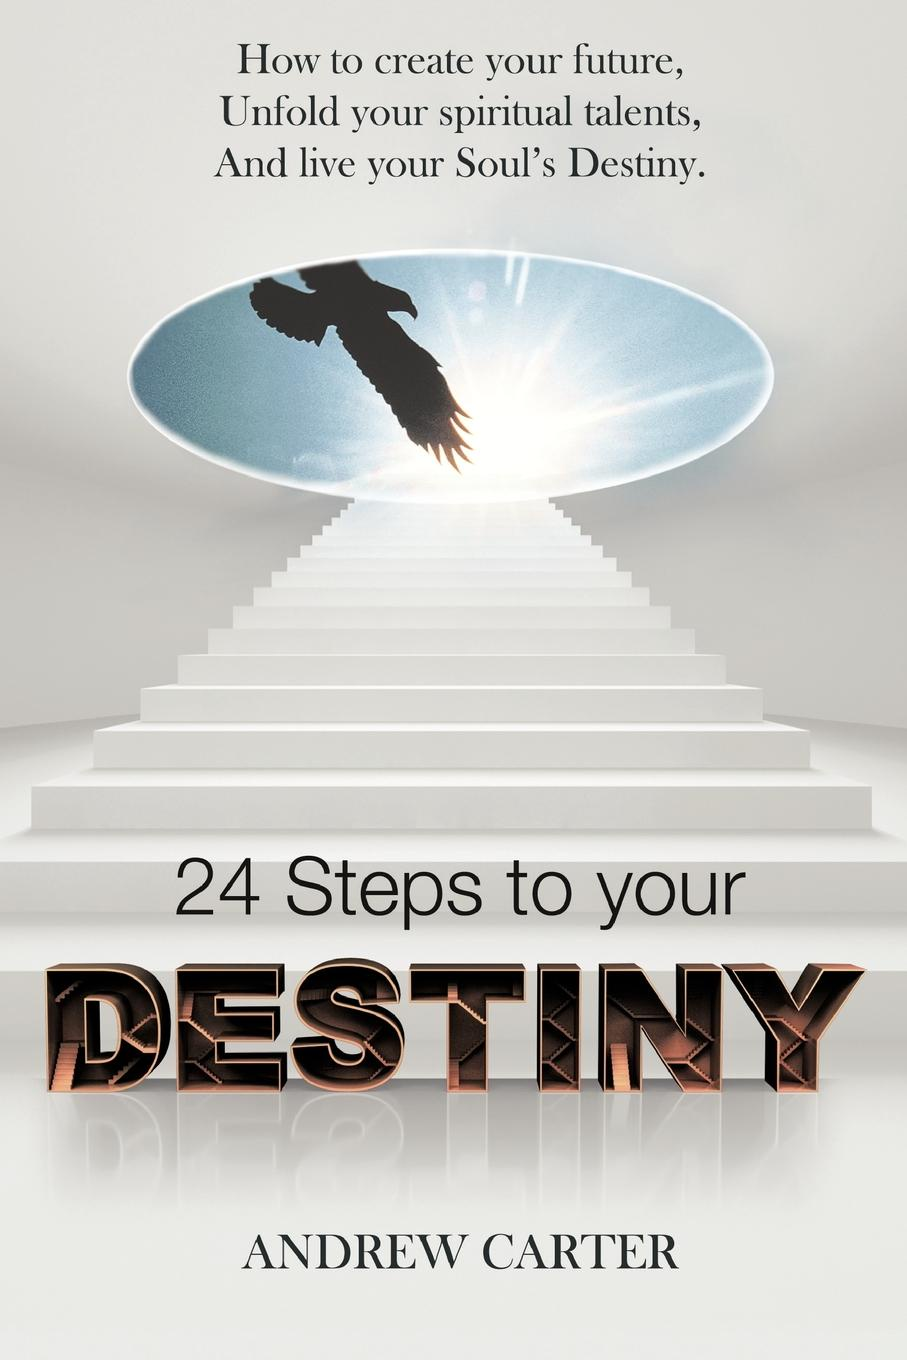 лучшая цена Andrew Carter Destiny. How to Create Your Future, Unfold Your Spiritual Talents and Live Your Soul's Destiny